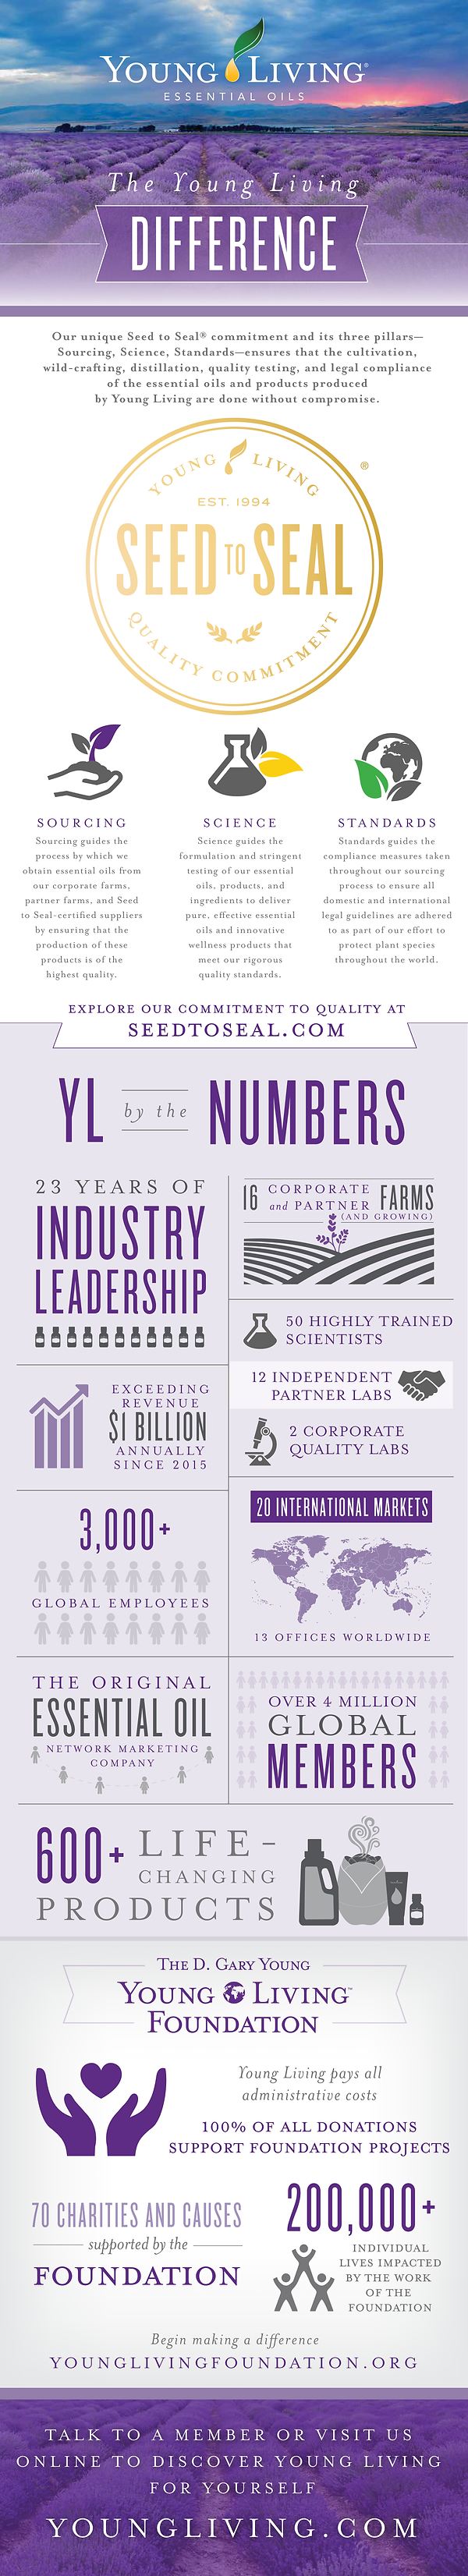 the-young-living-difference-infographic.